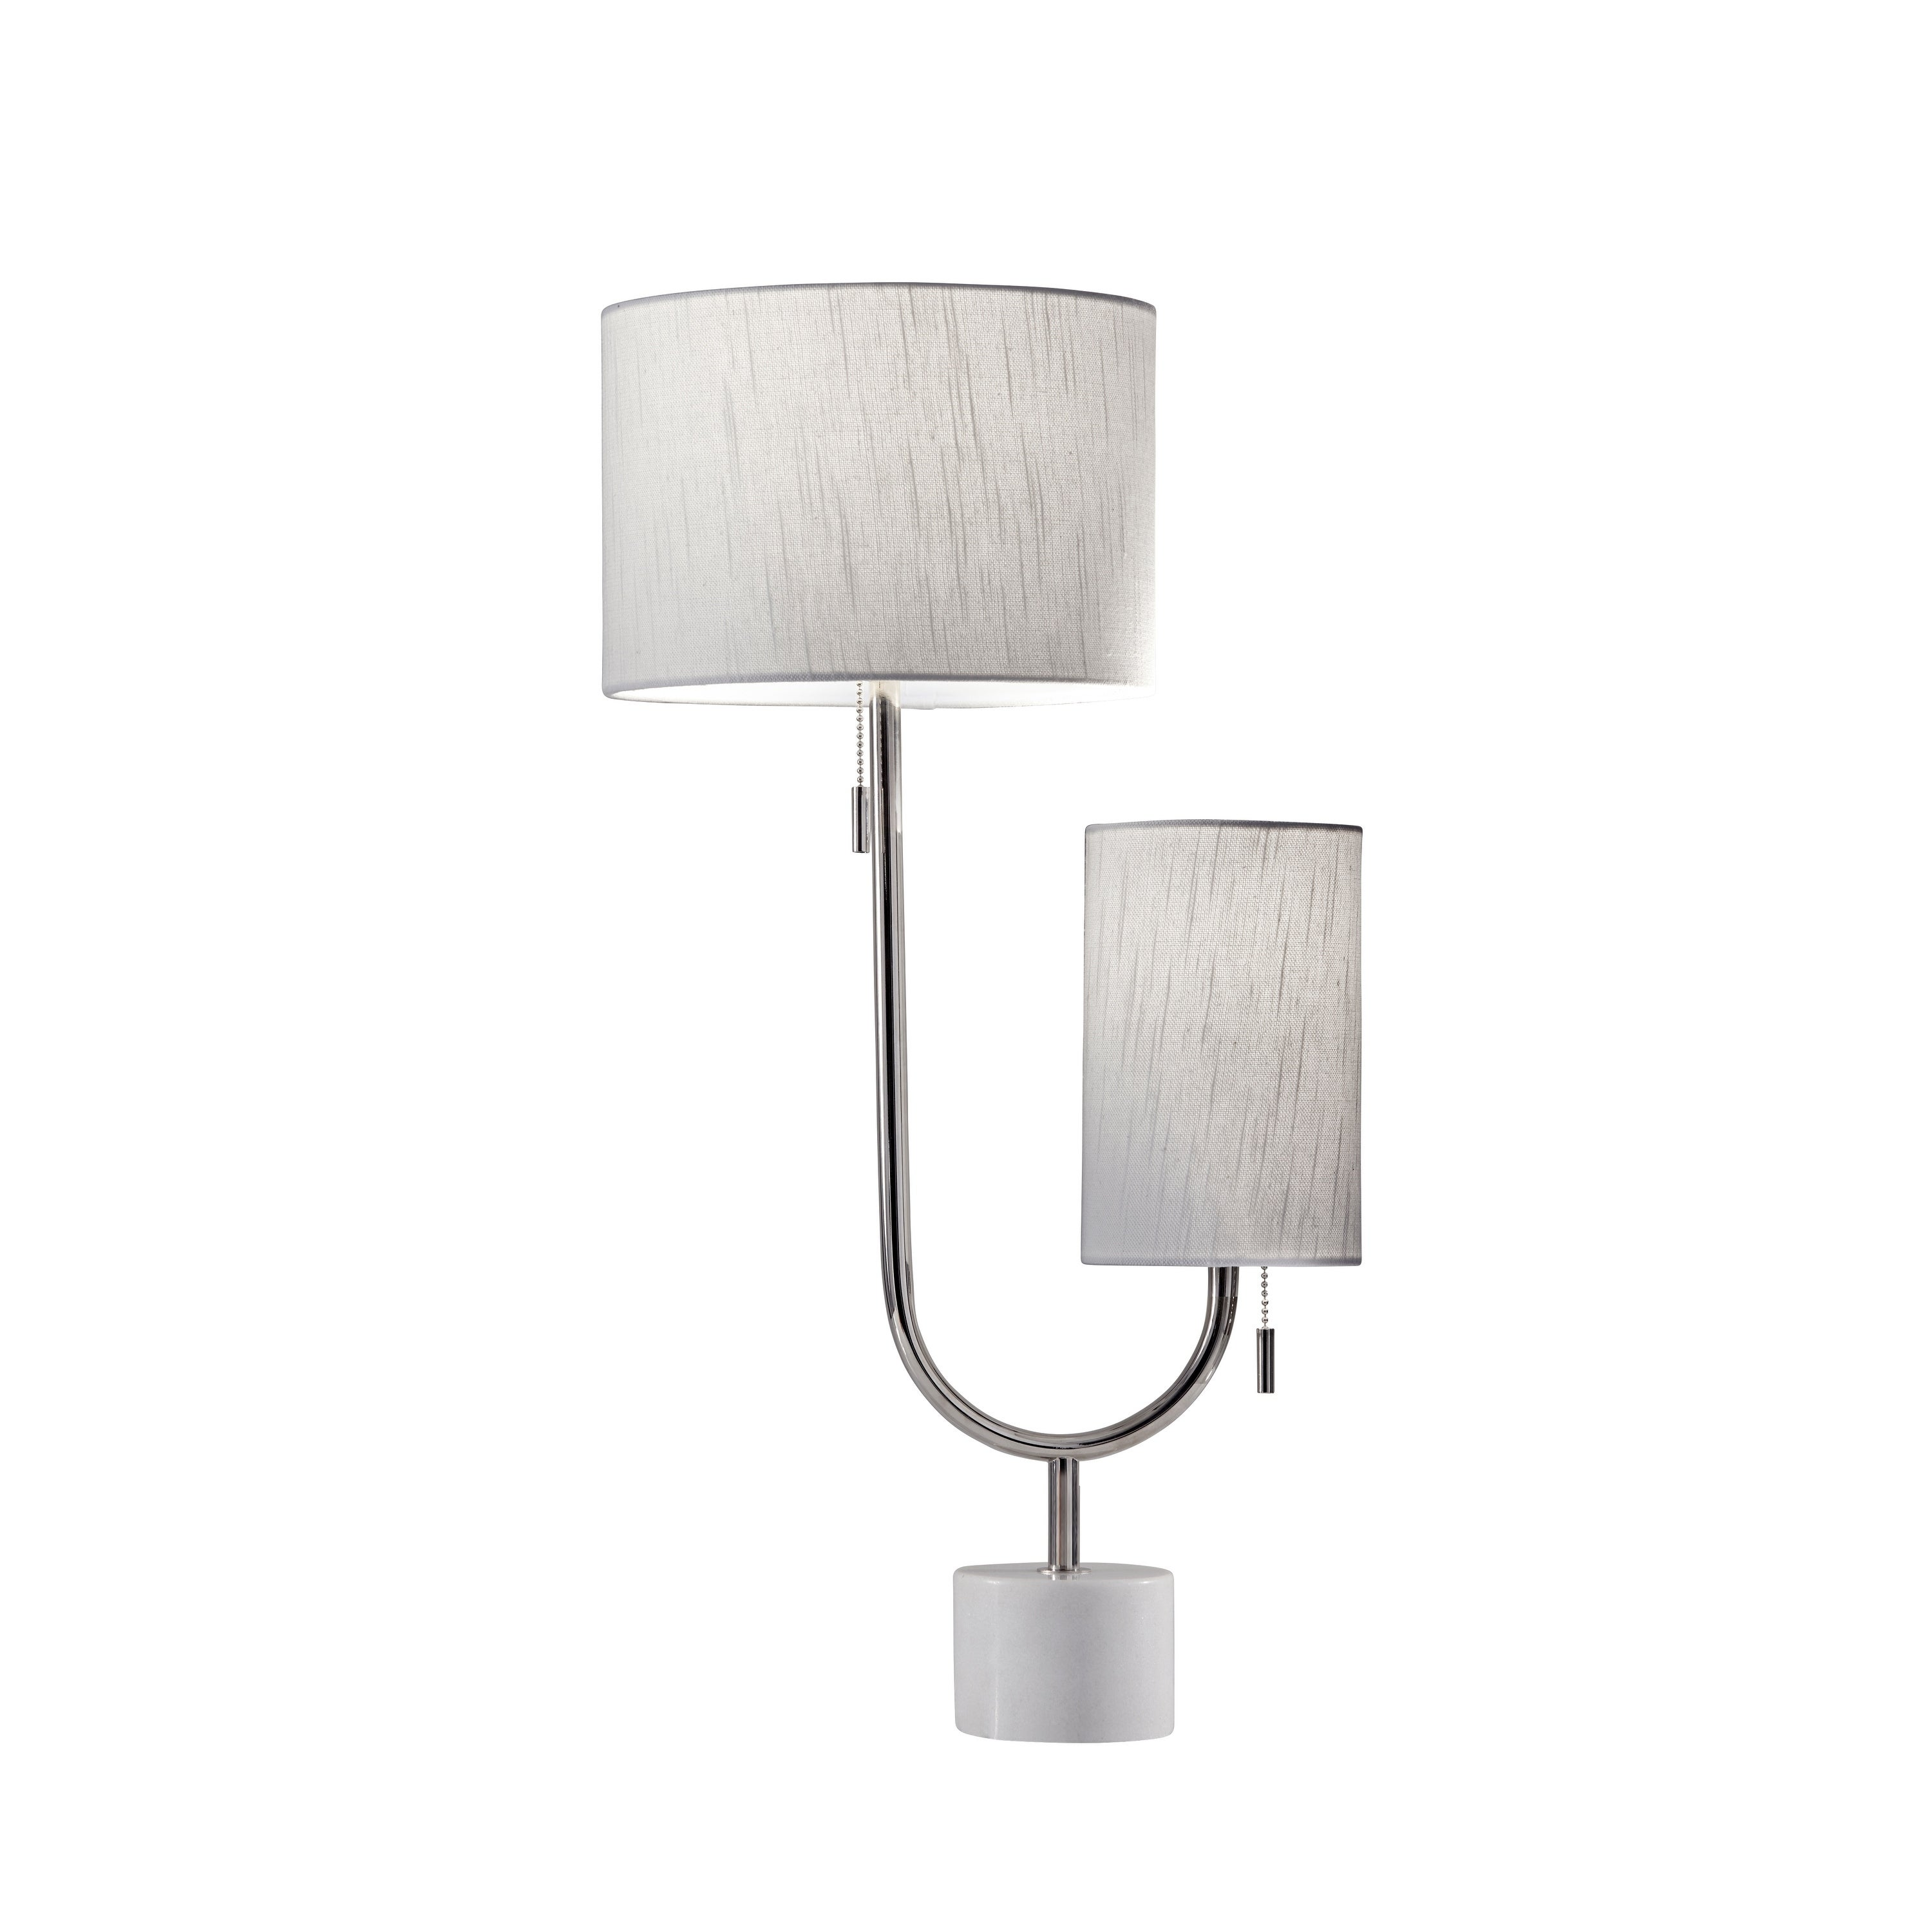 Shop Adesso Sloan Polished Nickel And White Marble Table Lamp